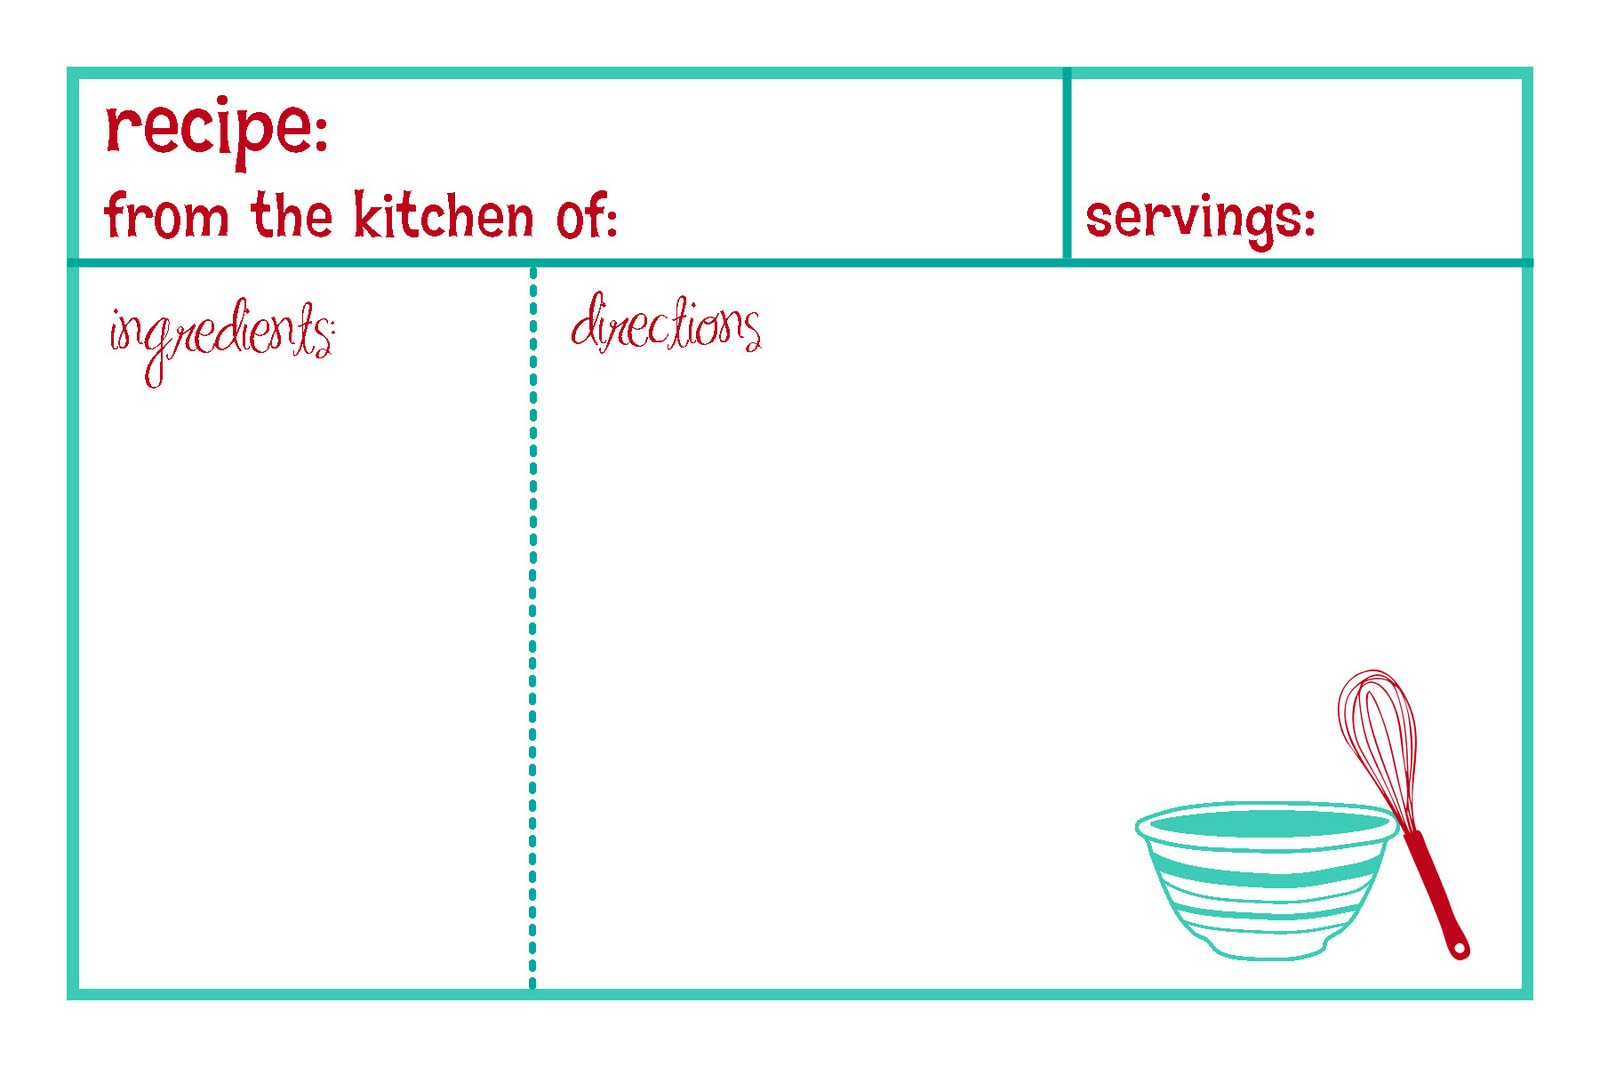 And hereu0026#39;s the book I am making for her to put all the recipes in: